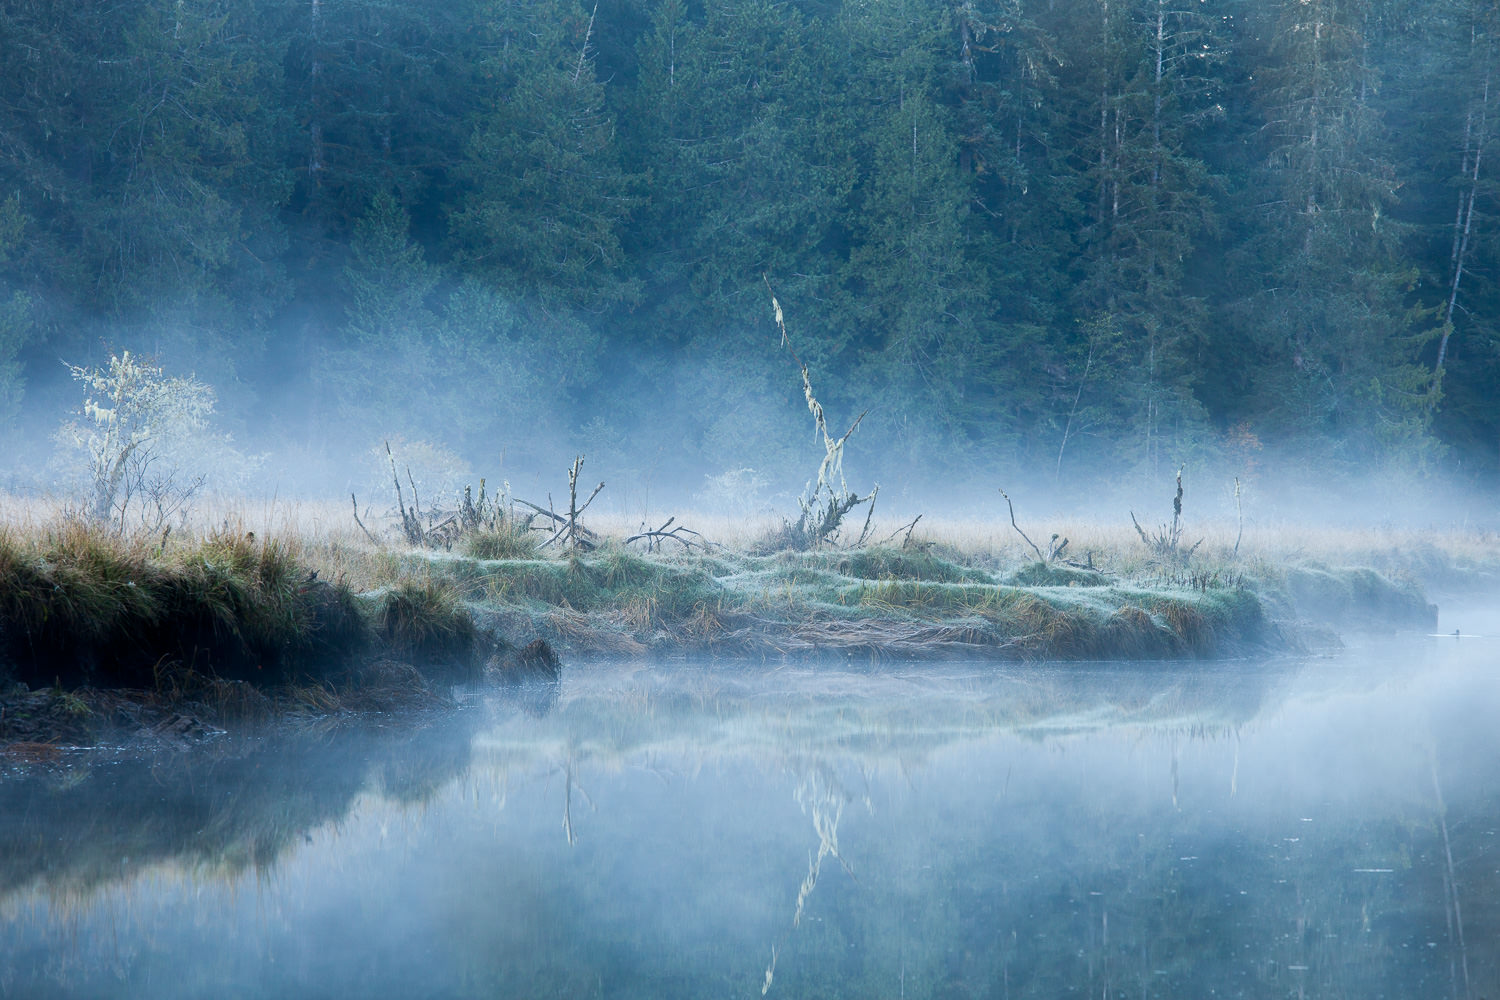 The San Juan River estuary is one of my very favourite places on Vancouver Island. It's home to an amazing array of wildlife including elk, deer, cougars, bears, wolves, countless birds, and much, much more. It's in a constant flux as well, ever changing with the rise and fall of the tides. Here, mist washes over the meadow during a chilly autumn sunrise.  Canon 5D MK2 | 70-200 f/4L IS lens | 1/20 sec | f/8 | ISO 200.